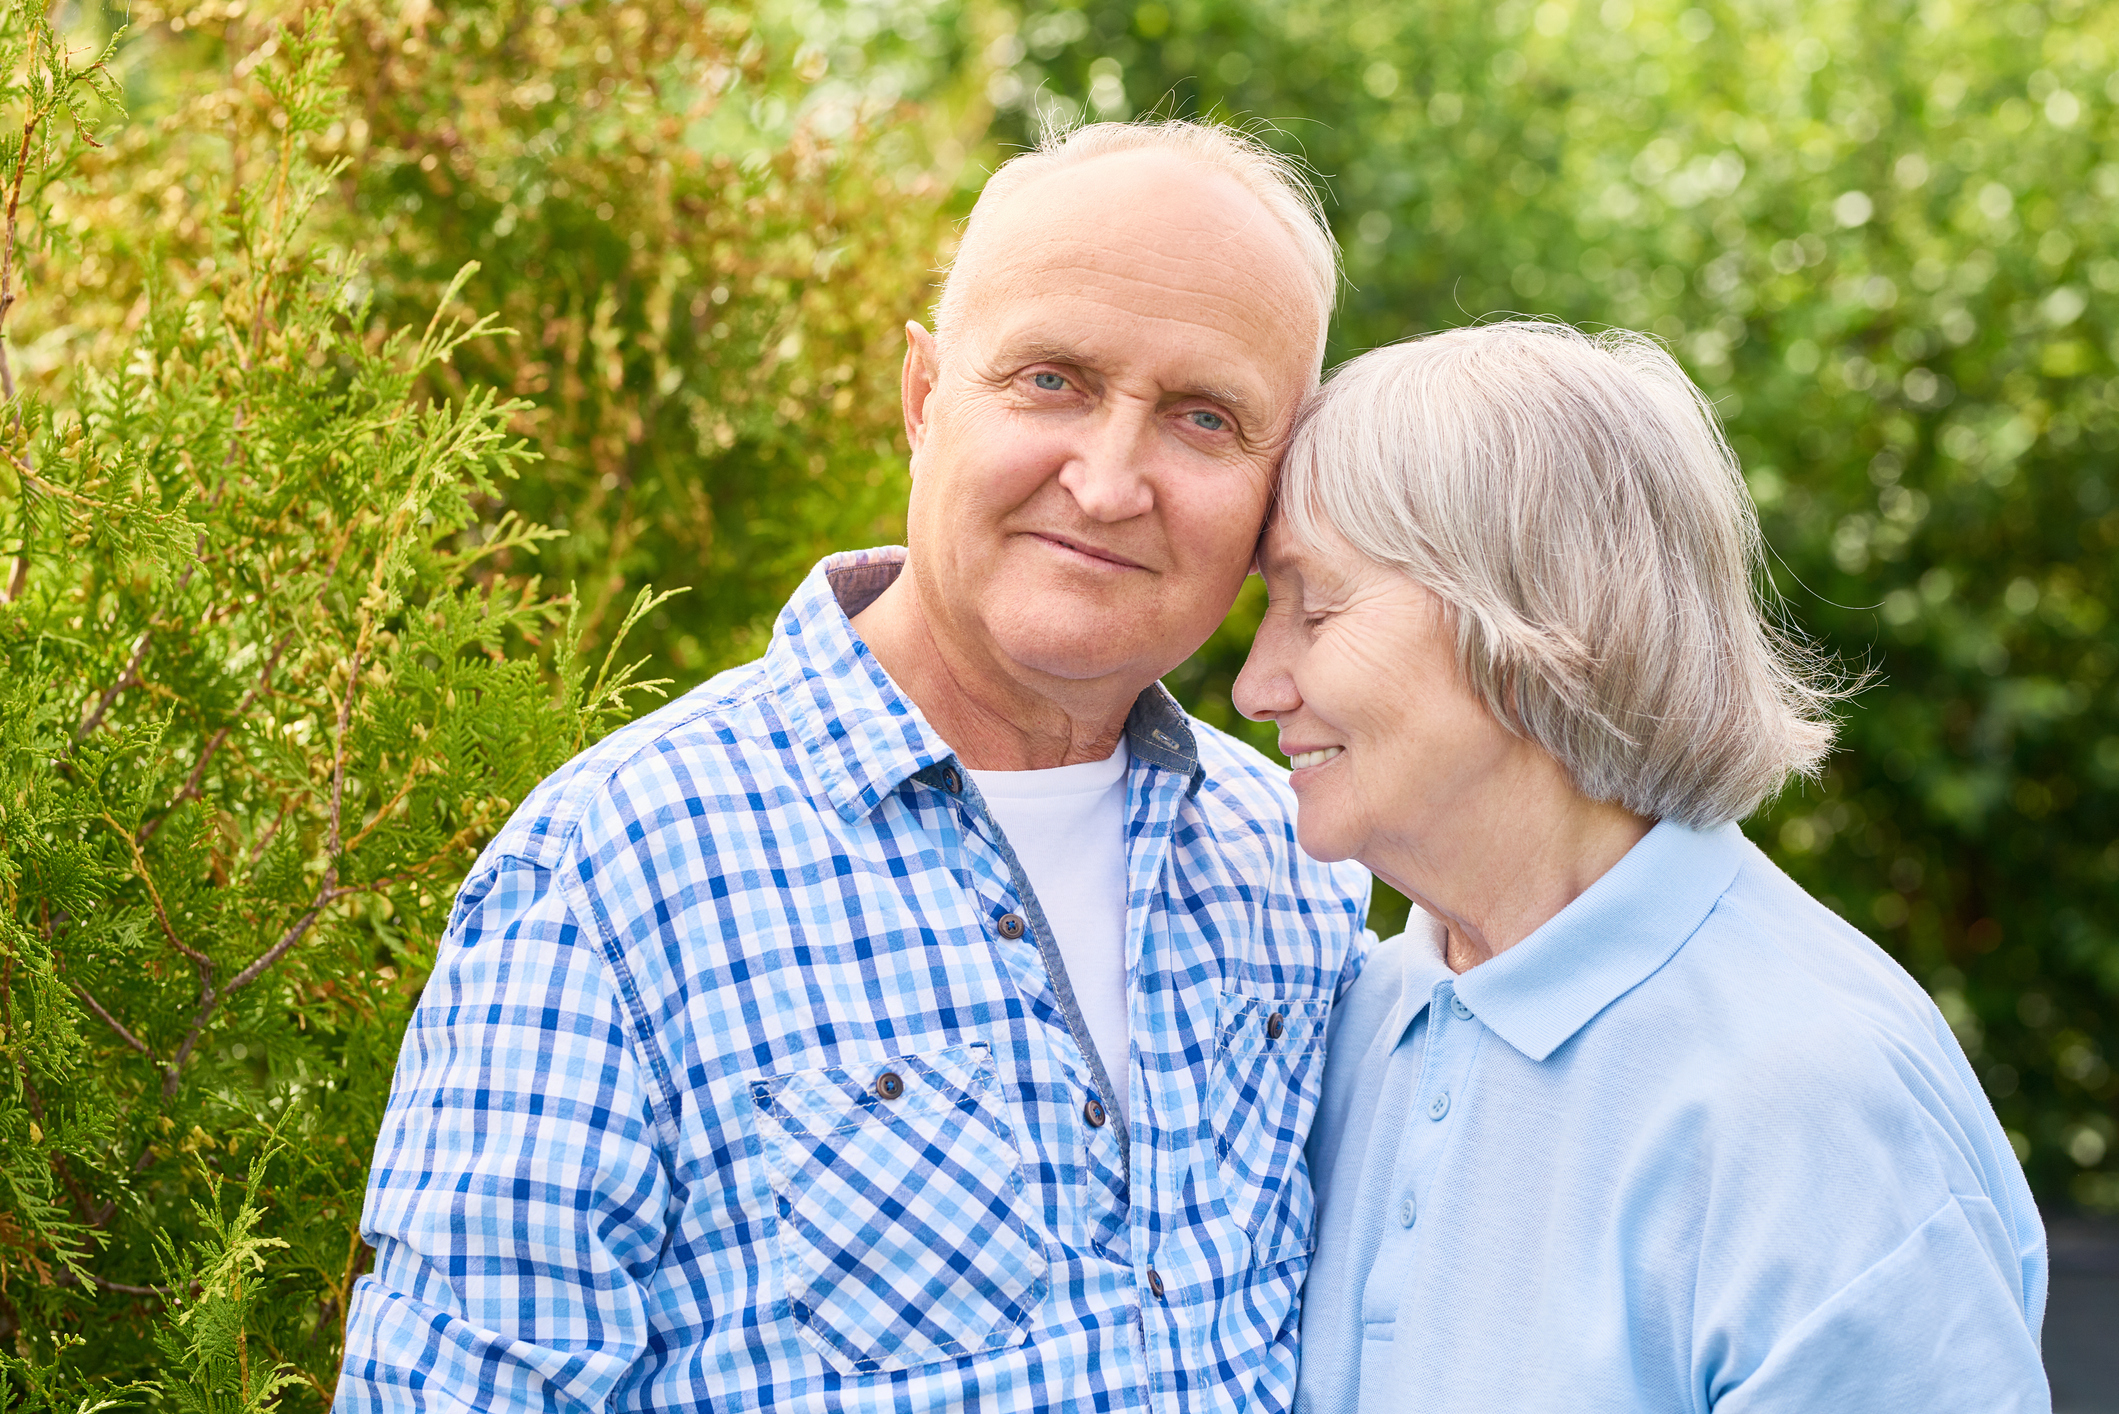 MEDICAId/VA PLANNING - Medicaid and VA benefits can help pay for the cost of assisted living and skilled nursing care. We can help you qualify for benefits while protecting your hard-earned assets.